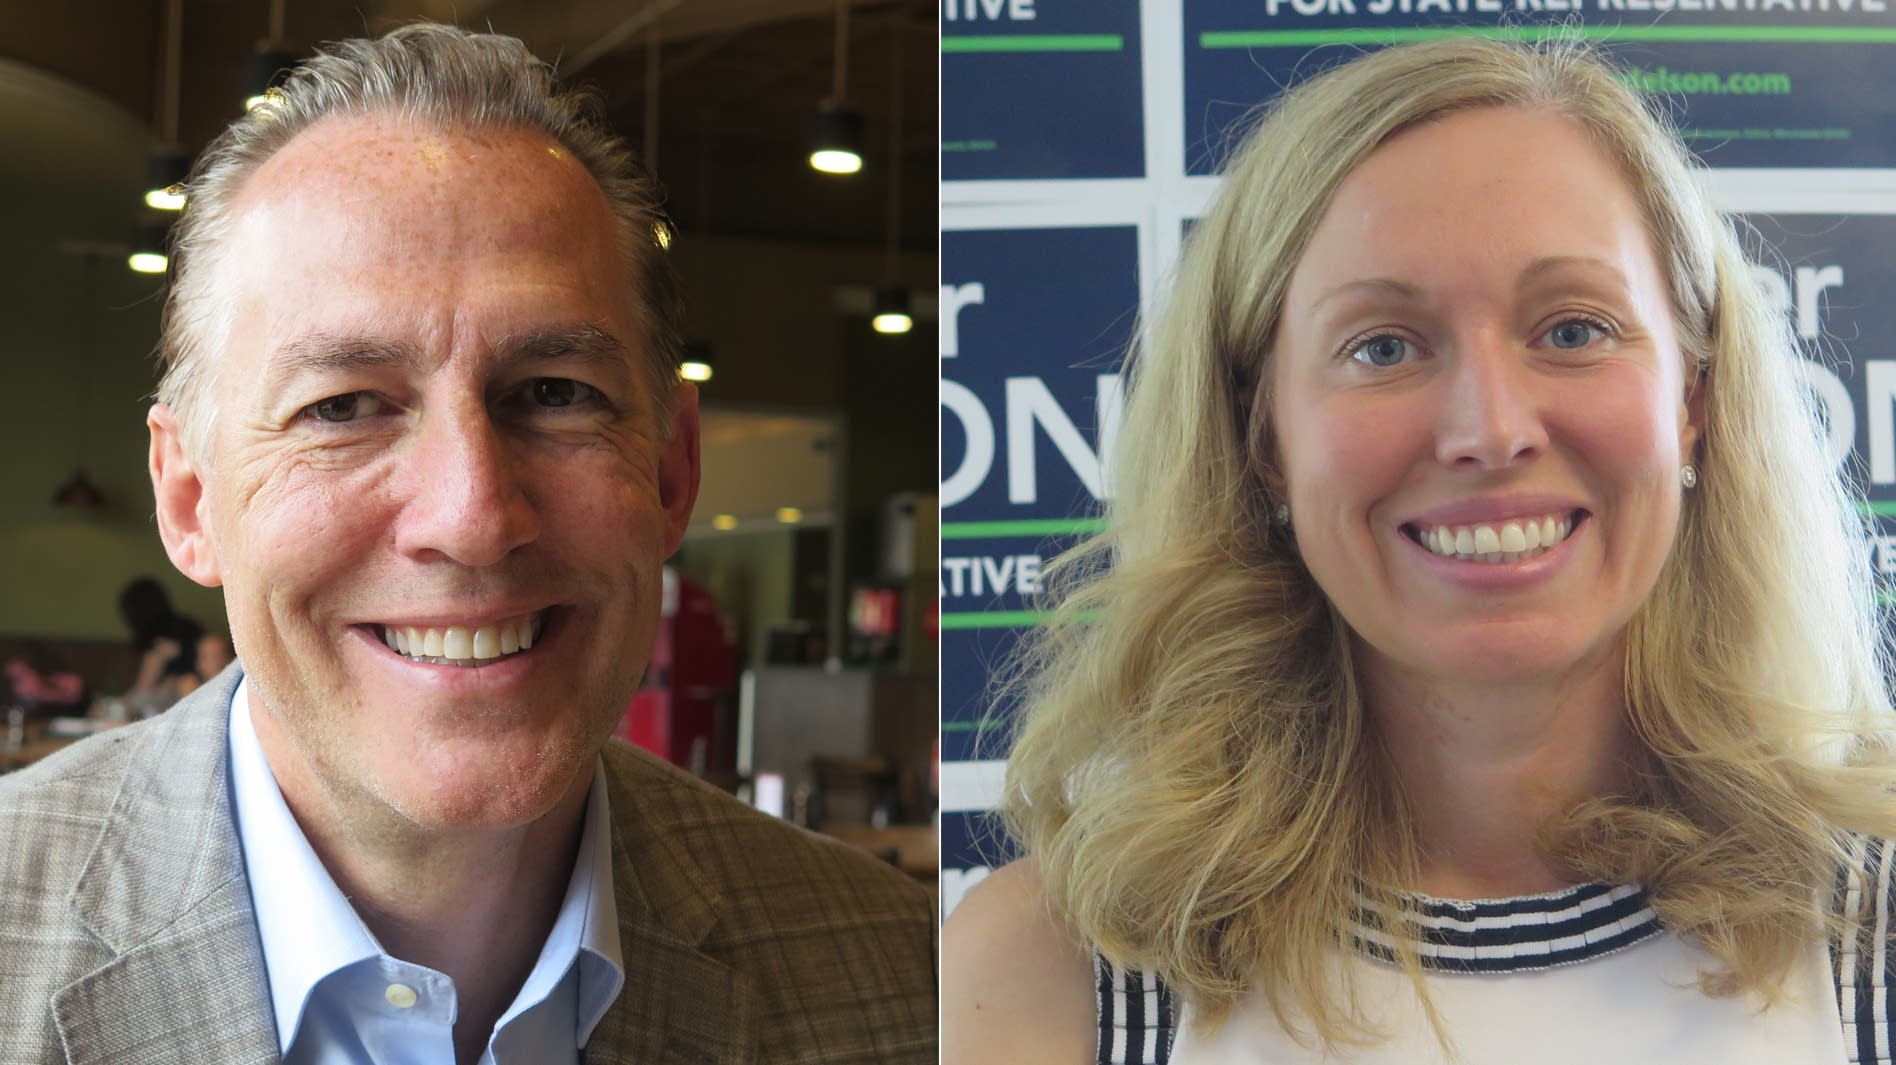 Dario Anselmo and Heather Edelson will face each other in the election.